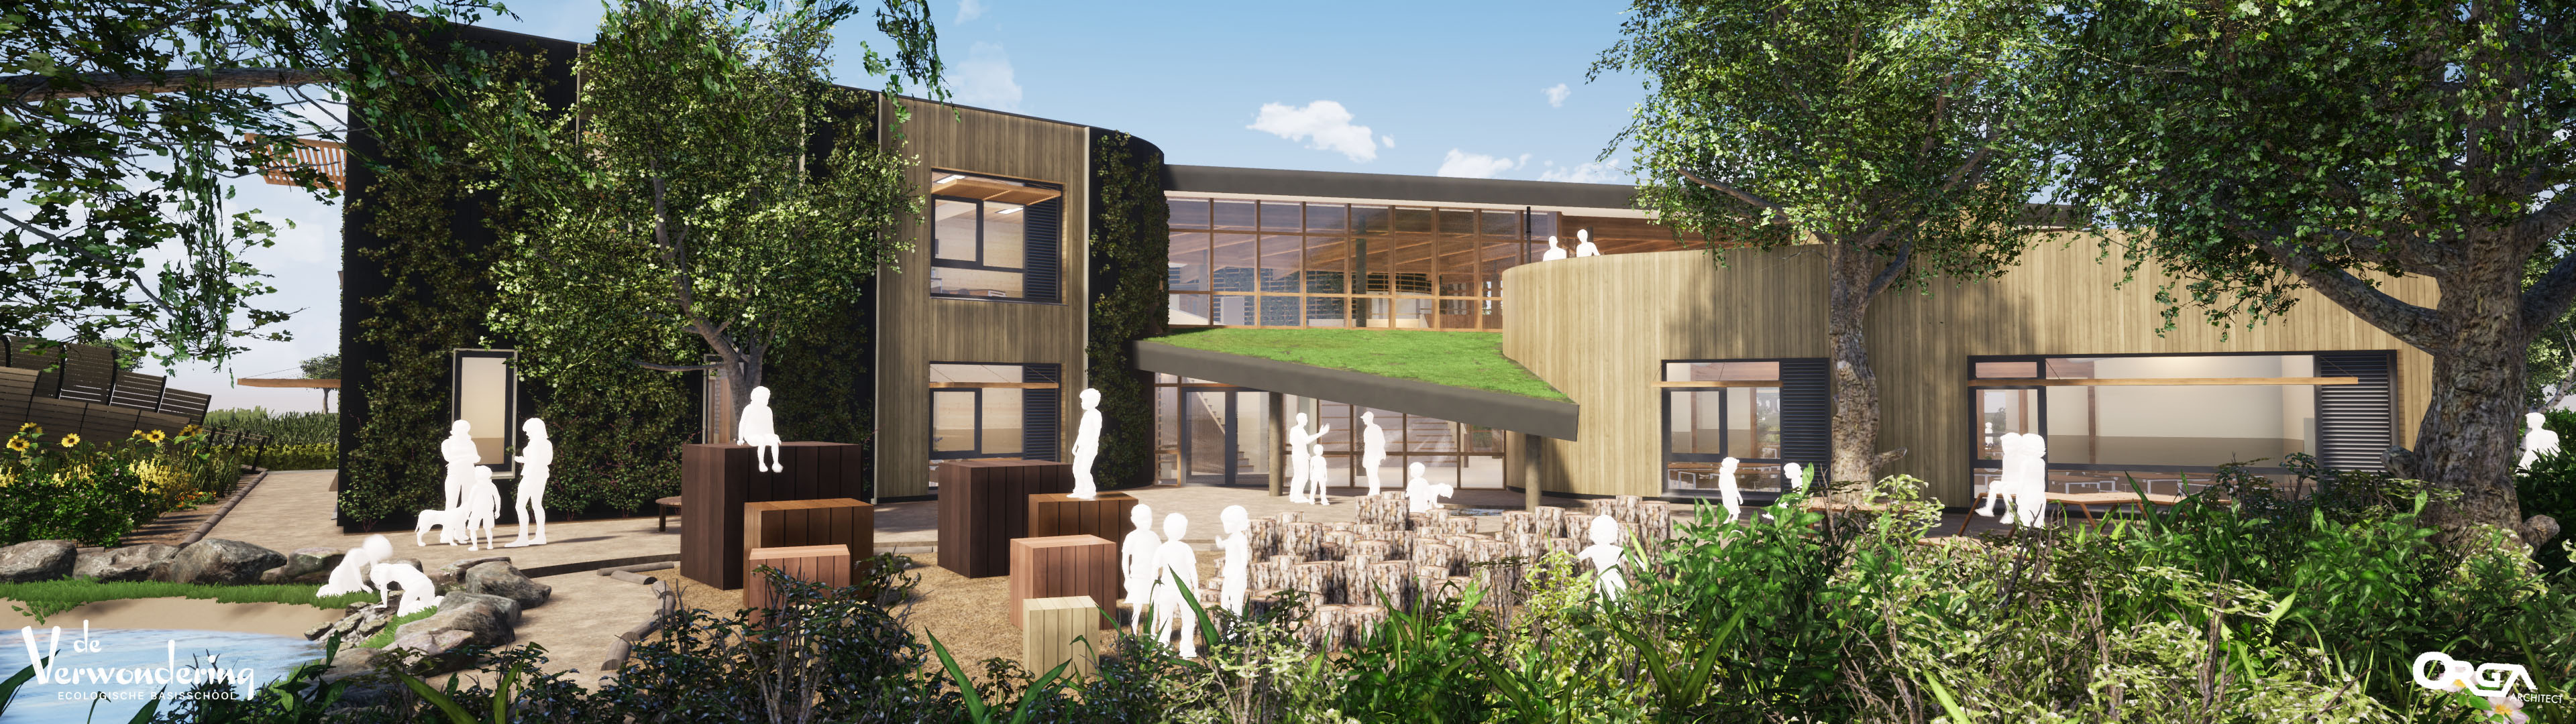 ORGA architect – Eco school De verwondering panorama 003